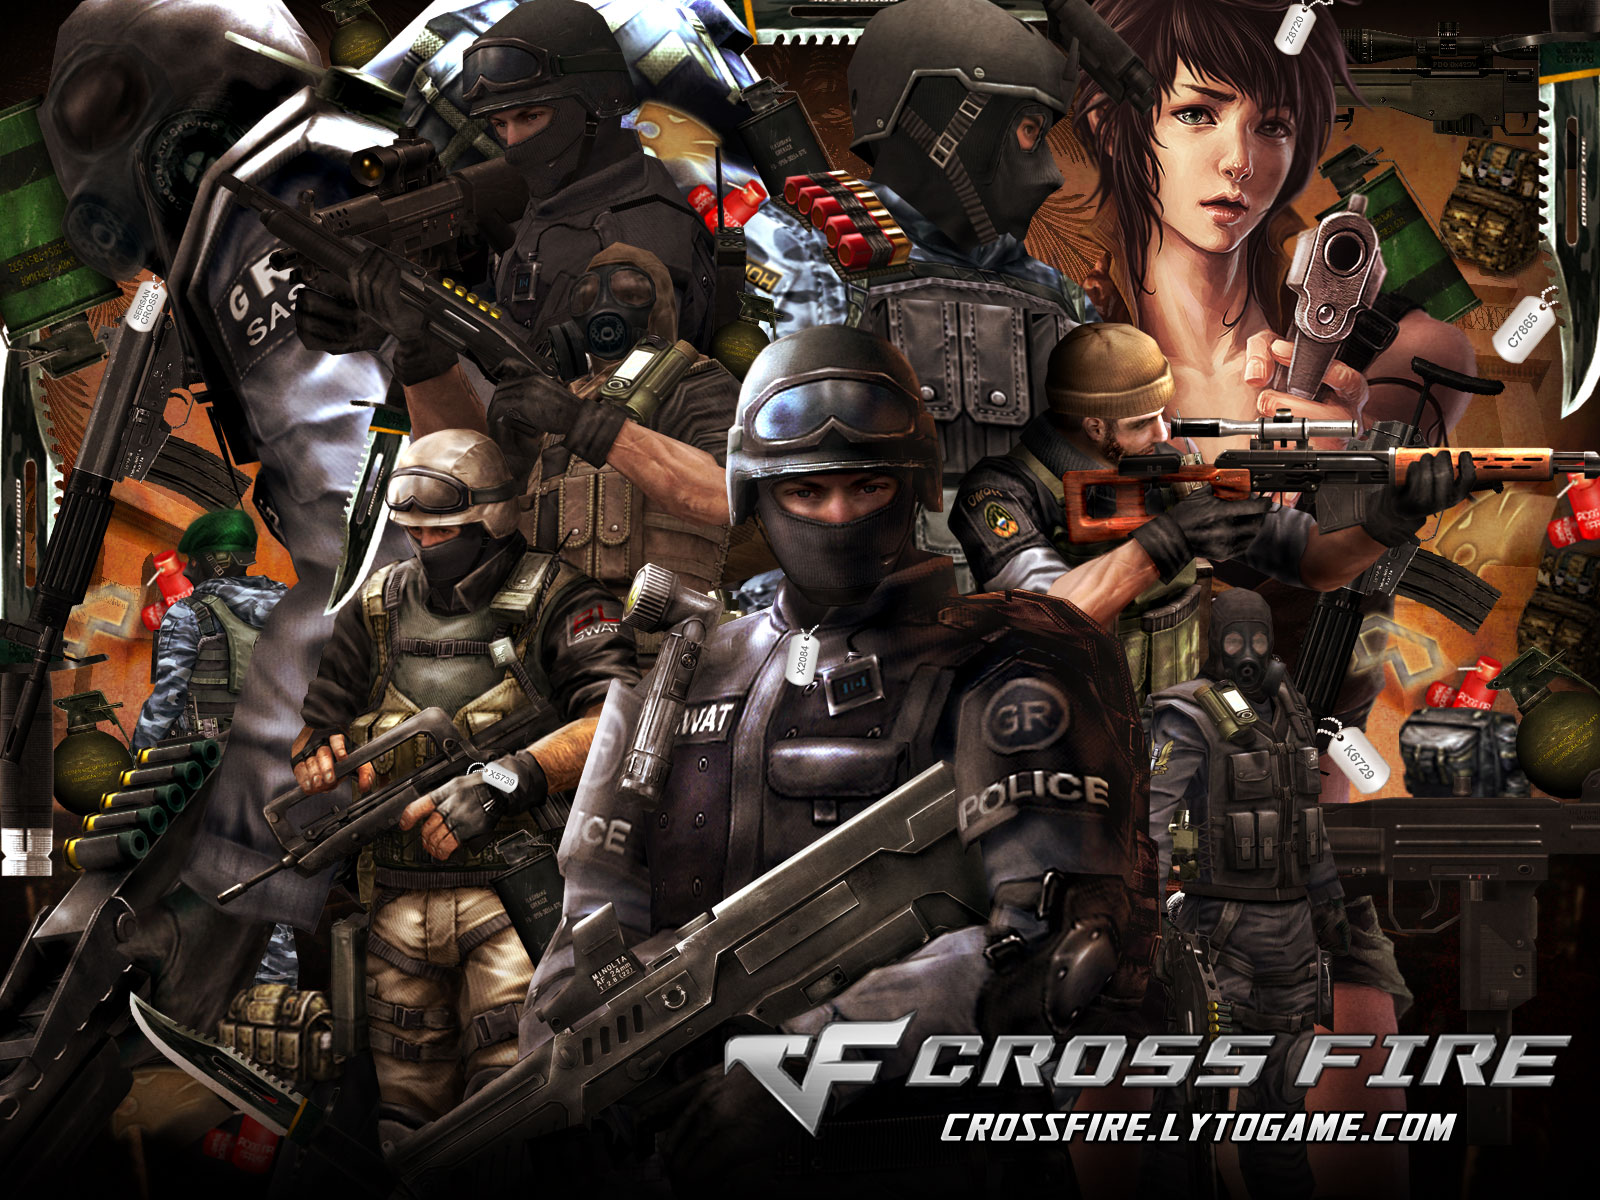 images of wallpaper cross fire all desktop blogspot com driver wallpaper